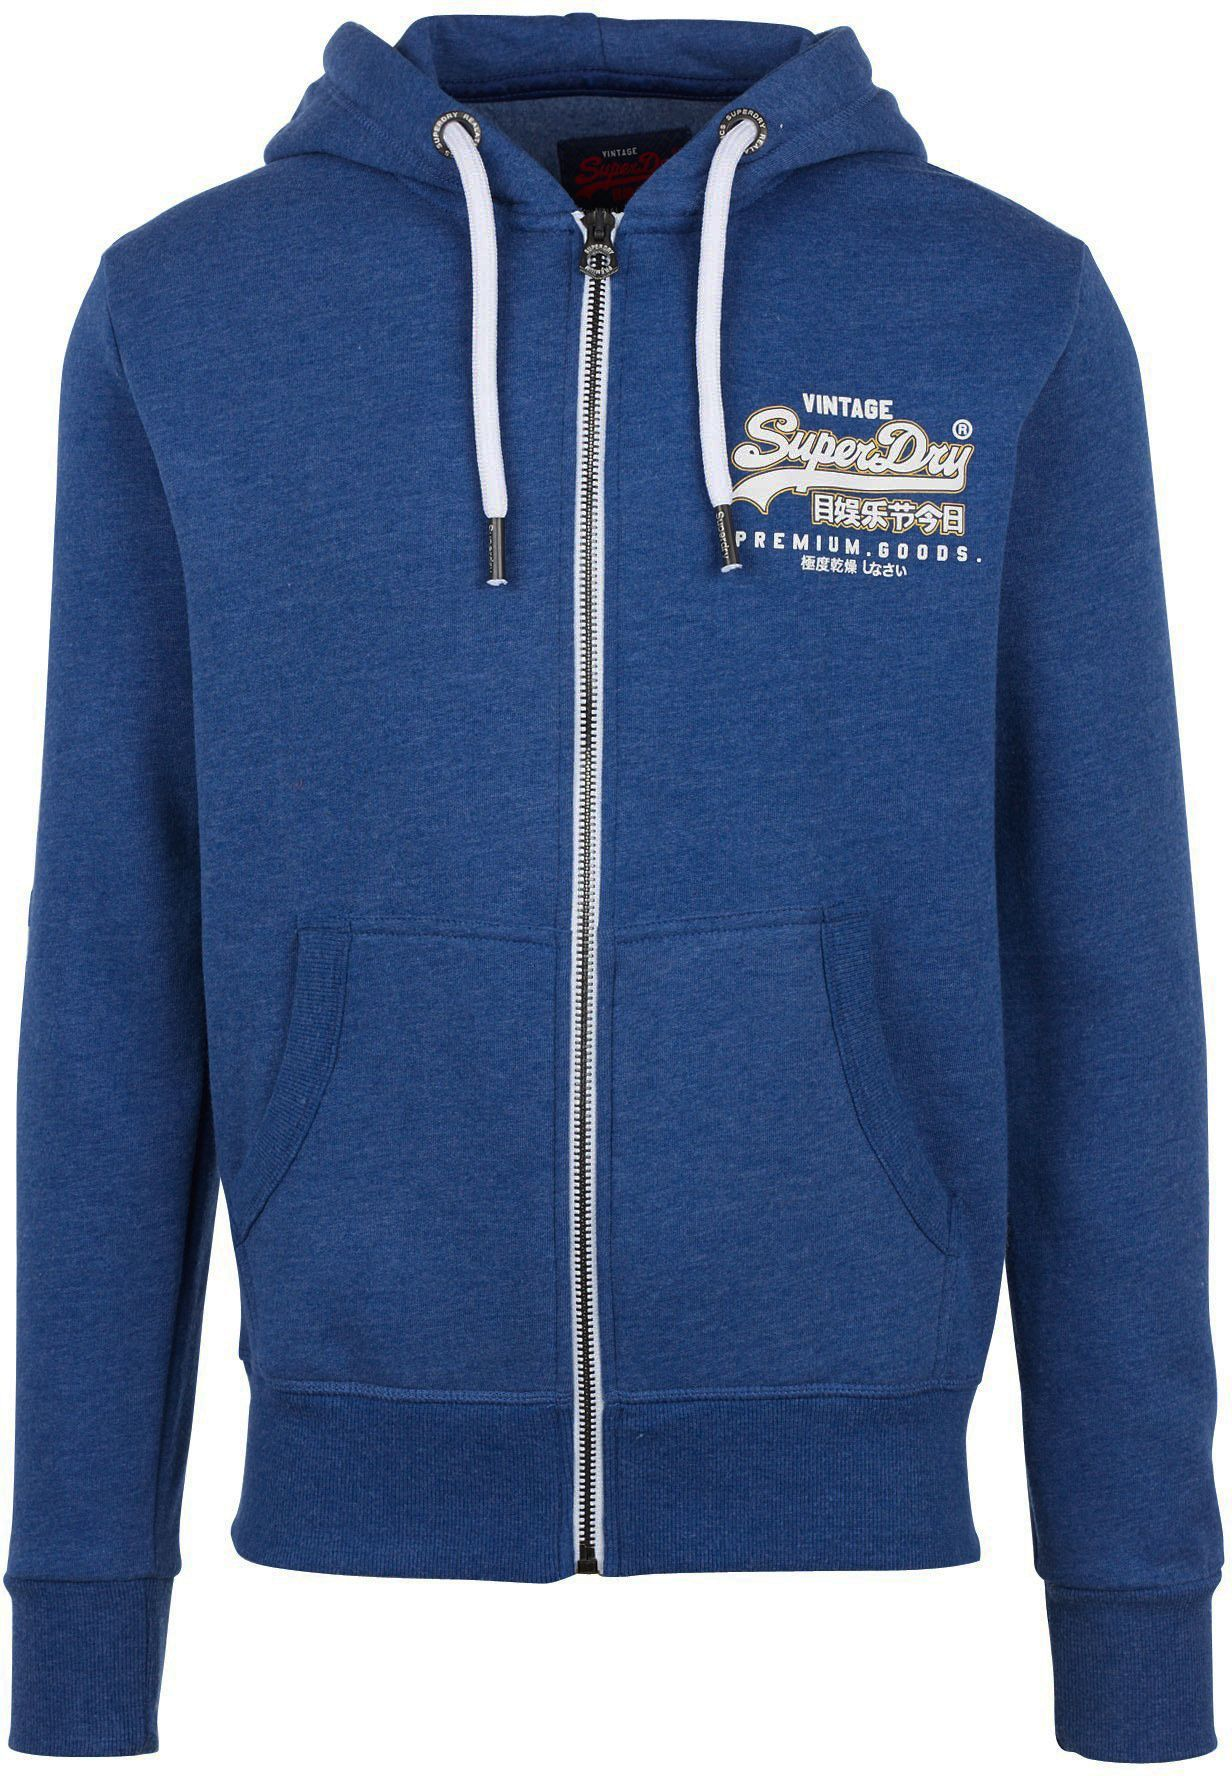 Superdry-Hoodies-amp-Sweats-Assorted-Styles thumbnail 62